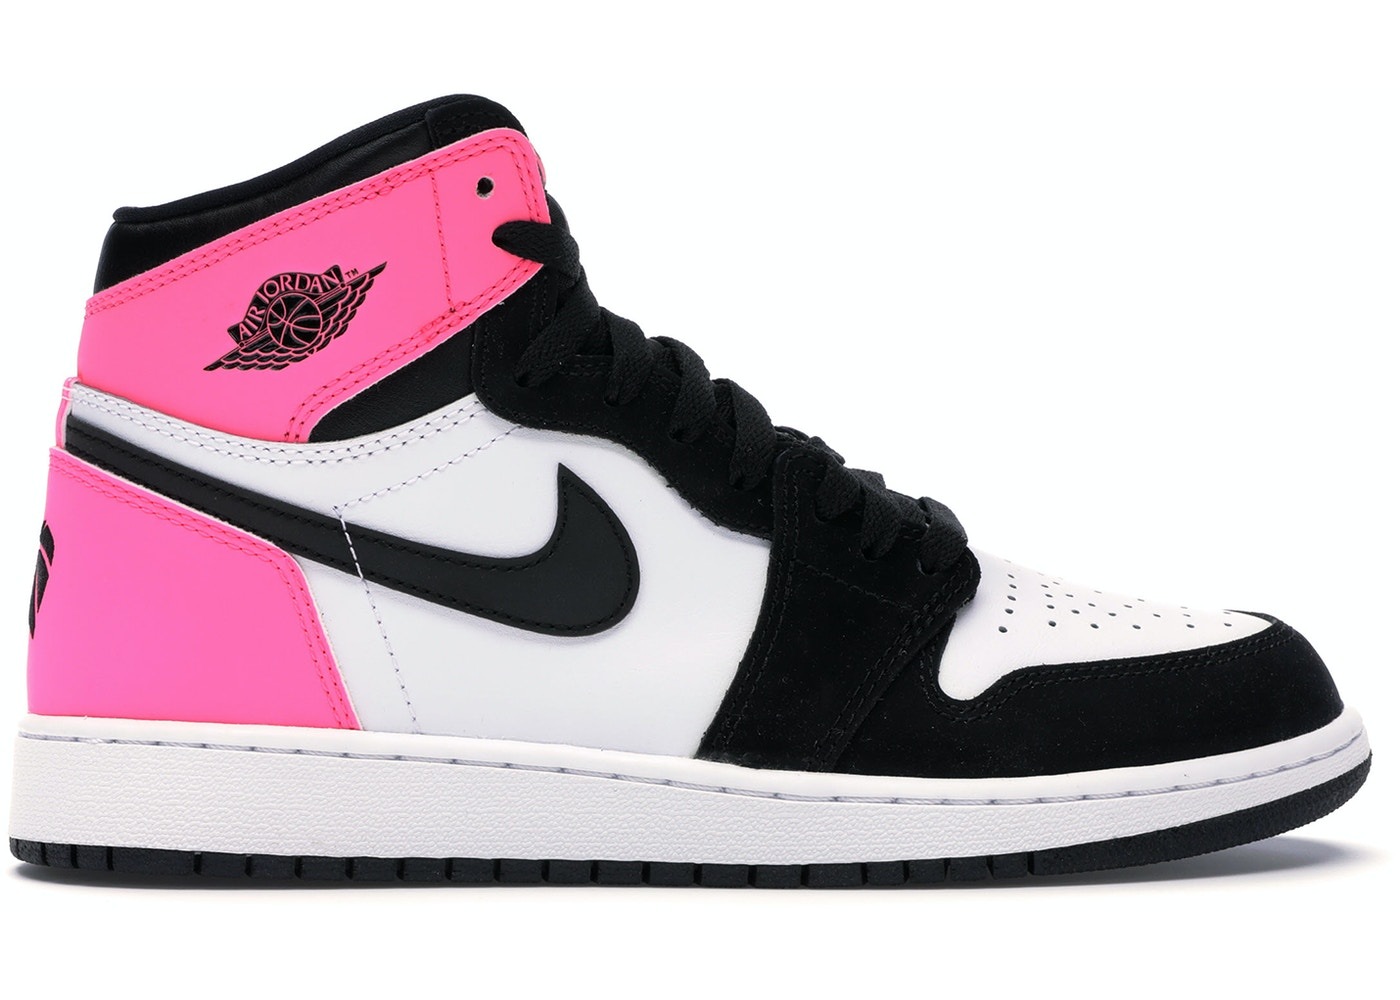 new product 29277 06290 Jordan 1 Retro Valentine's Day 2017 (GS)